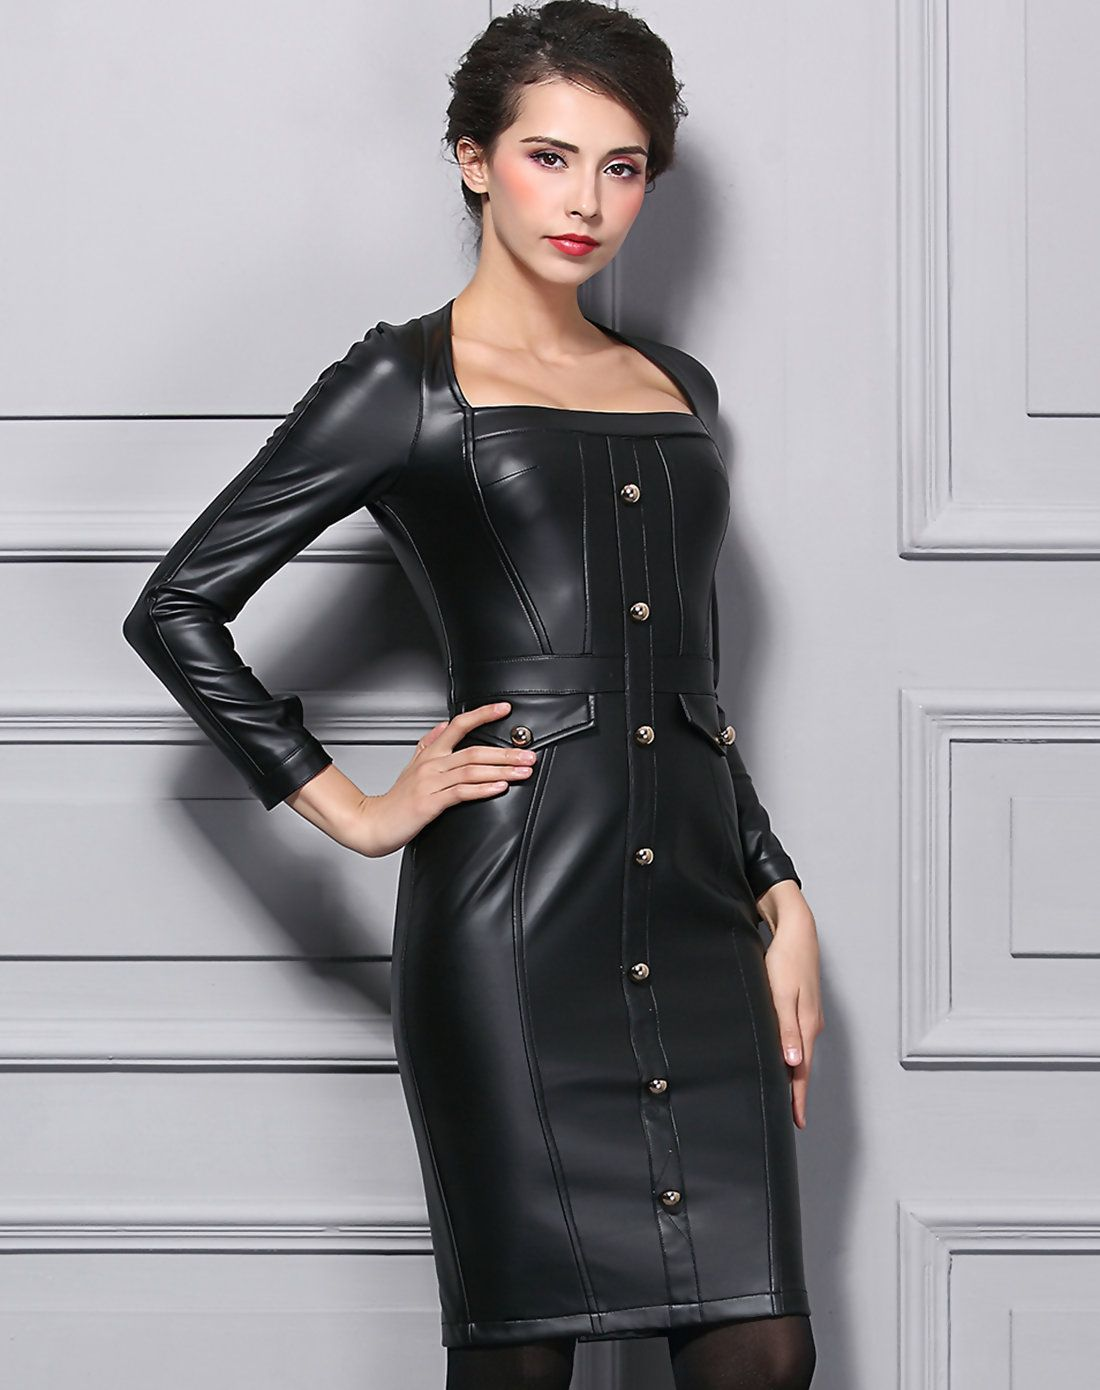 Leather dress deri elbise pinterest front button sleeved